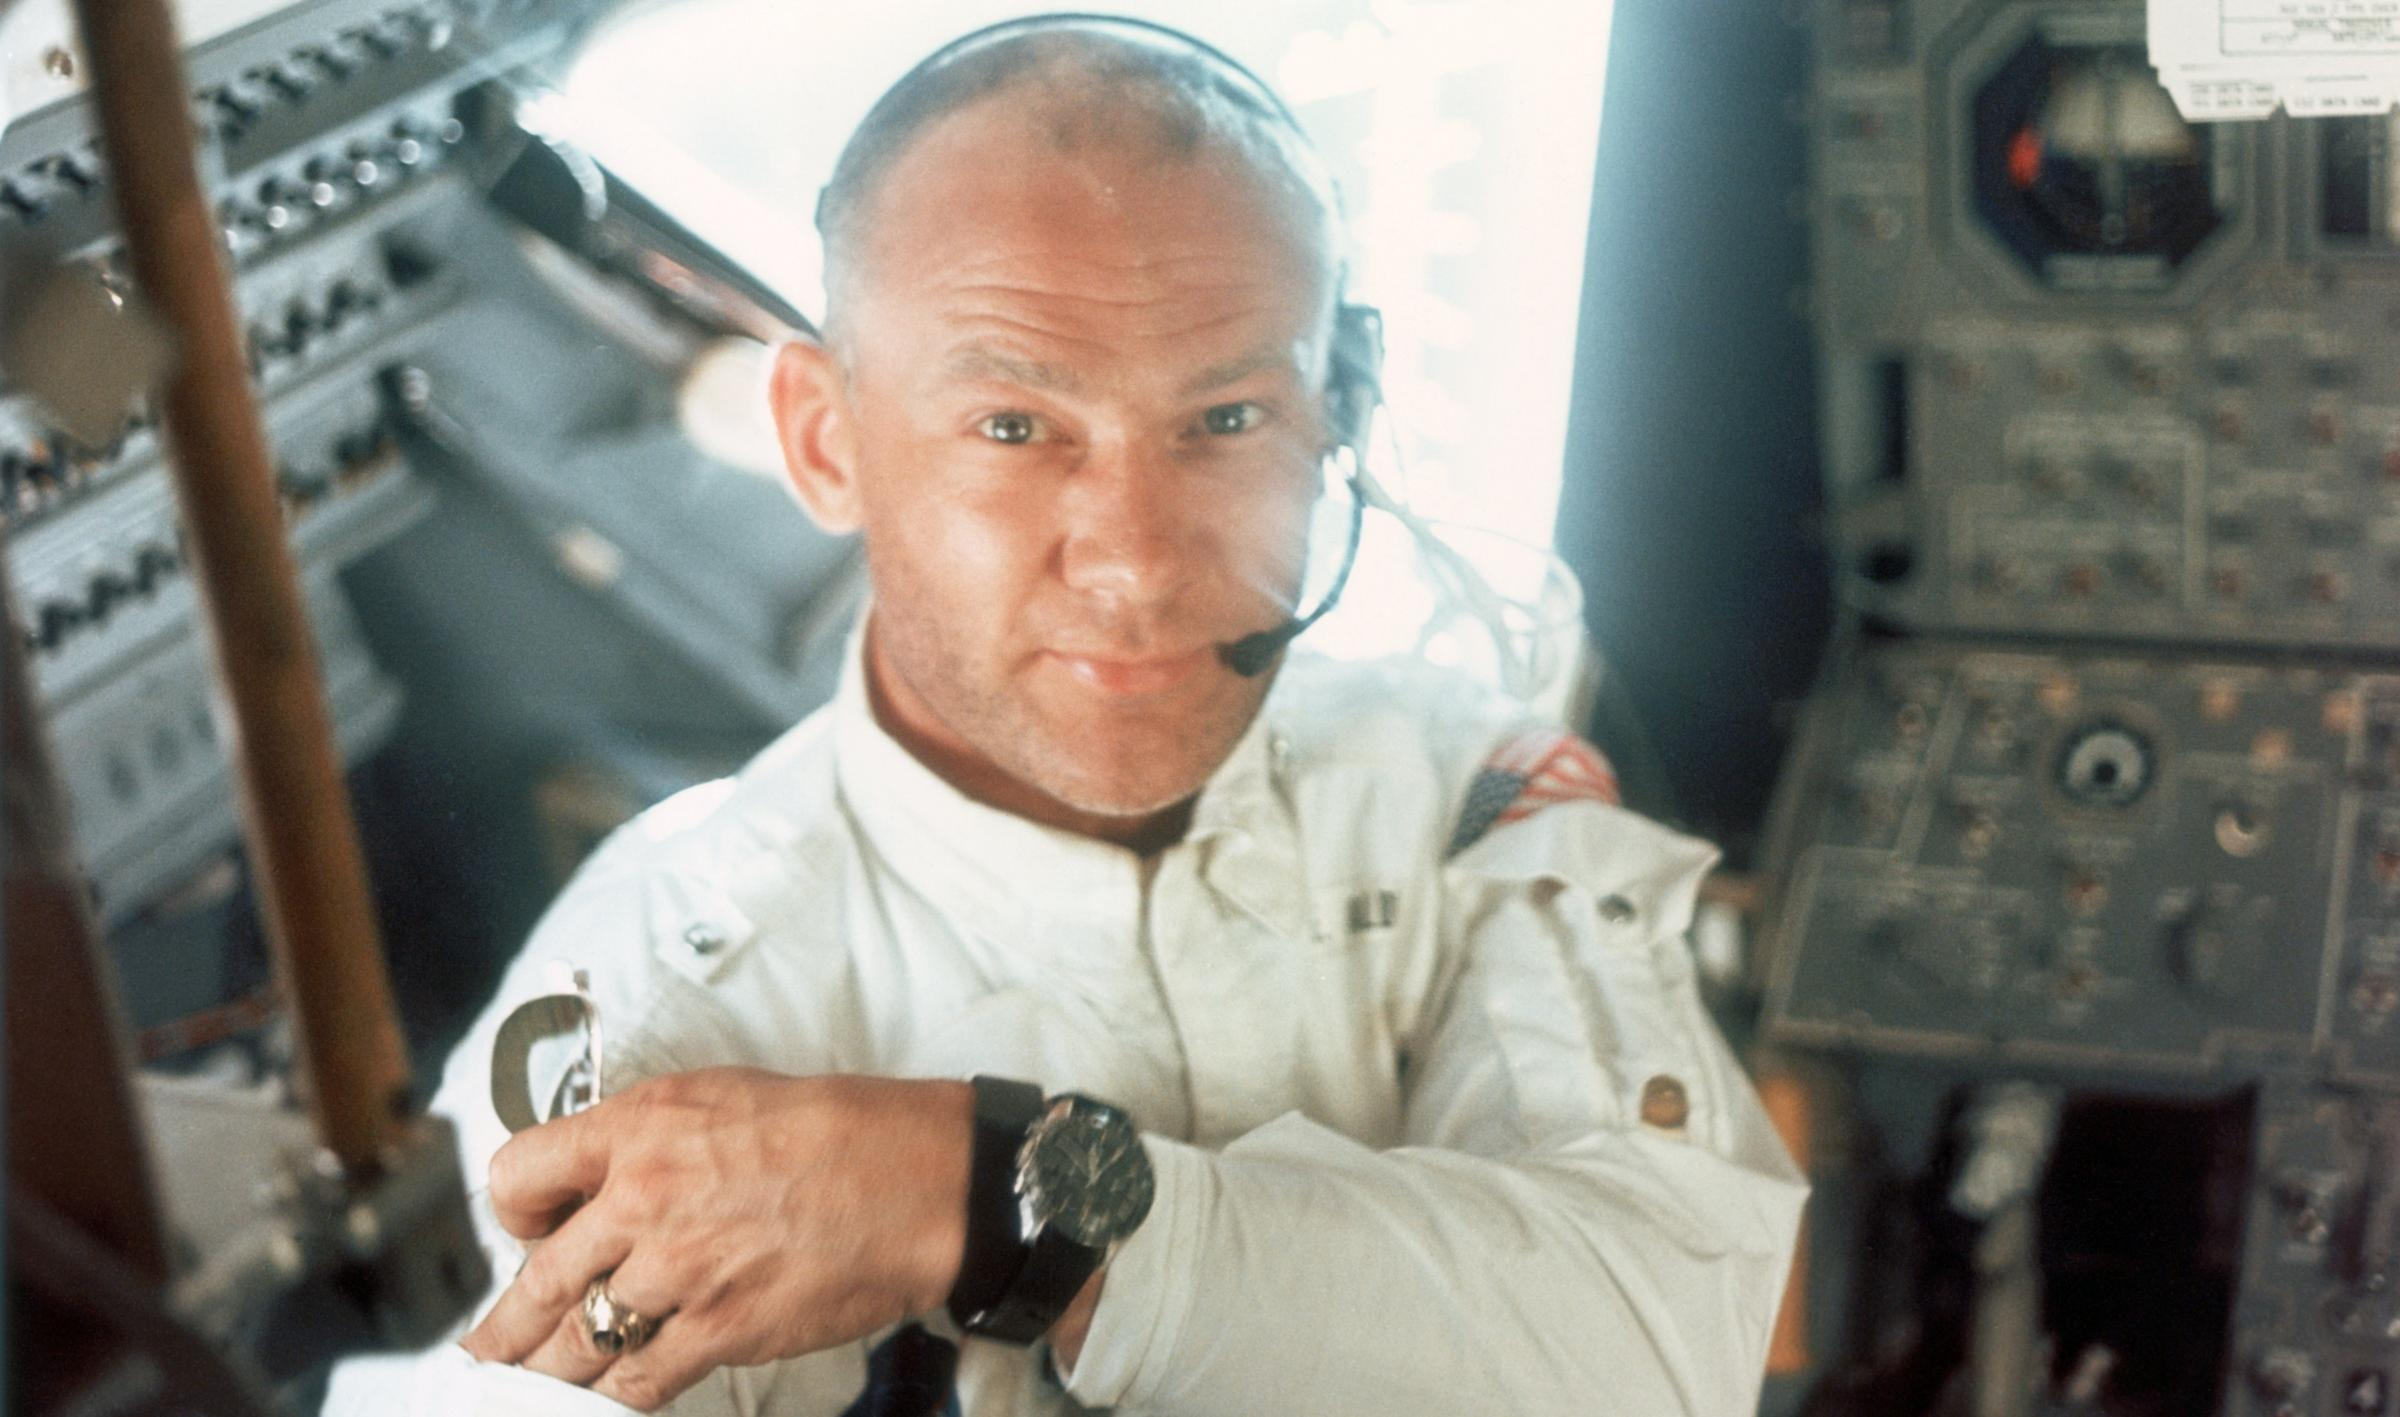 Buzz Aldrin did see something strange during his 1969 voyage. Photograph: Getty